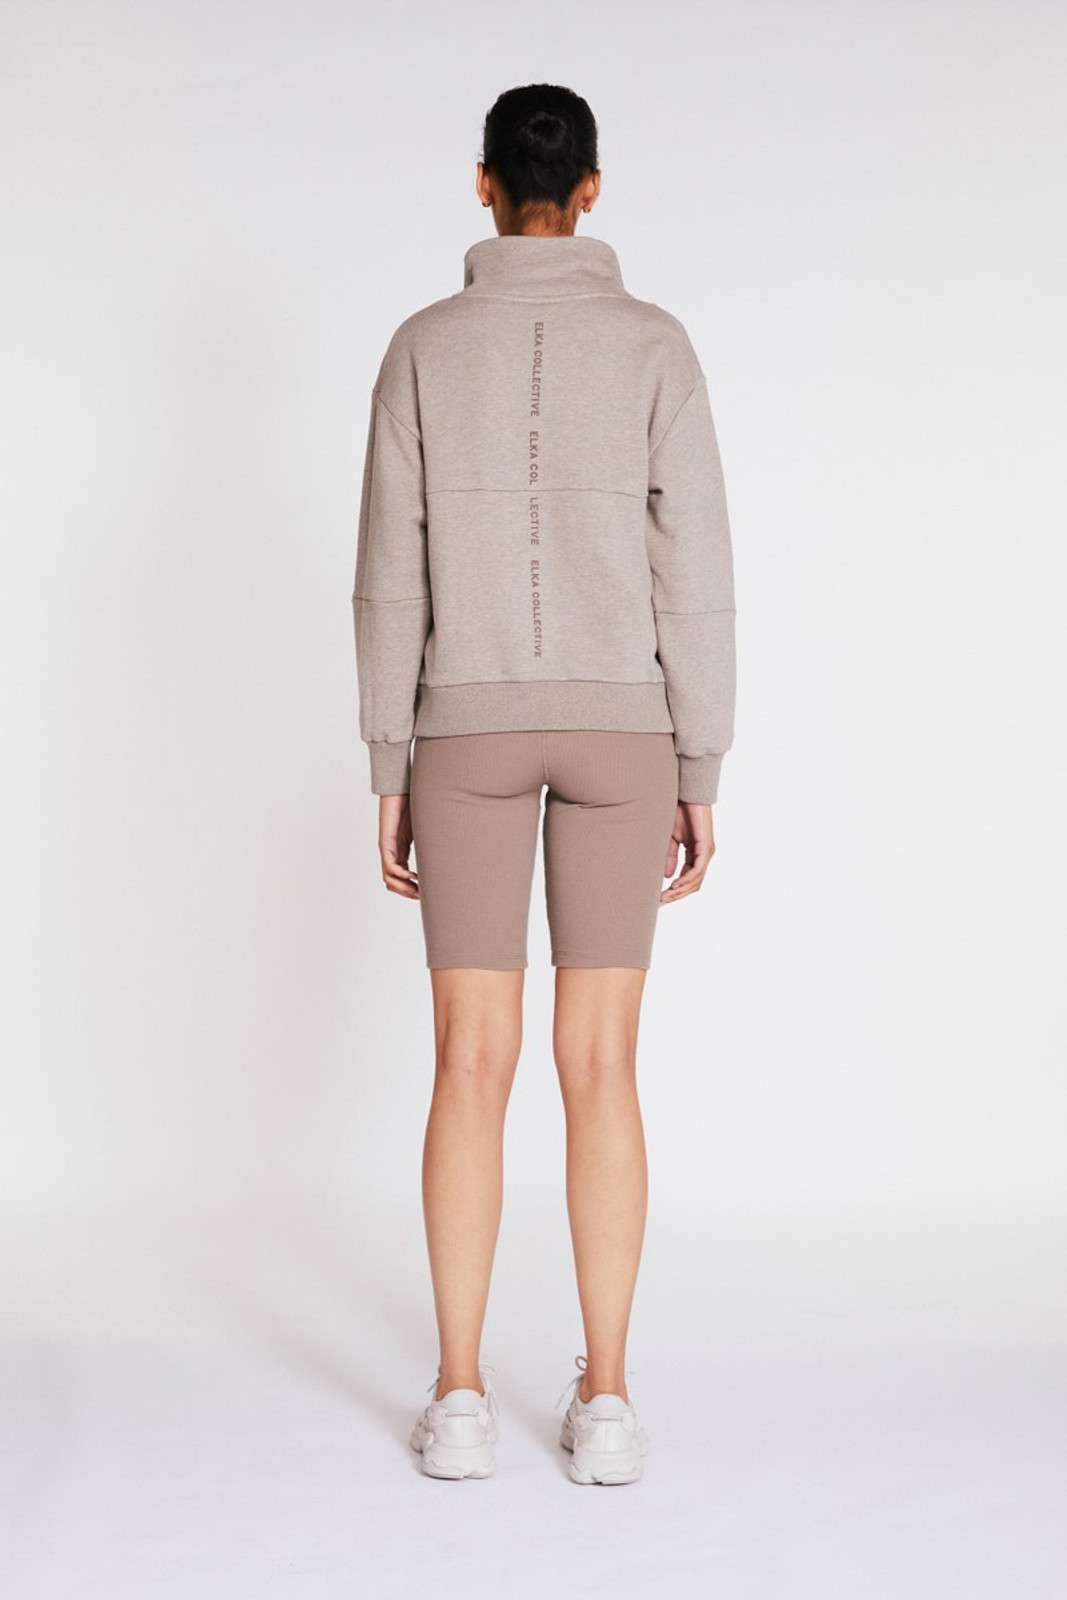 Elka Collective Mindful Sweater Neutrals  4